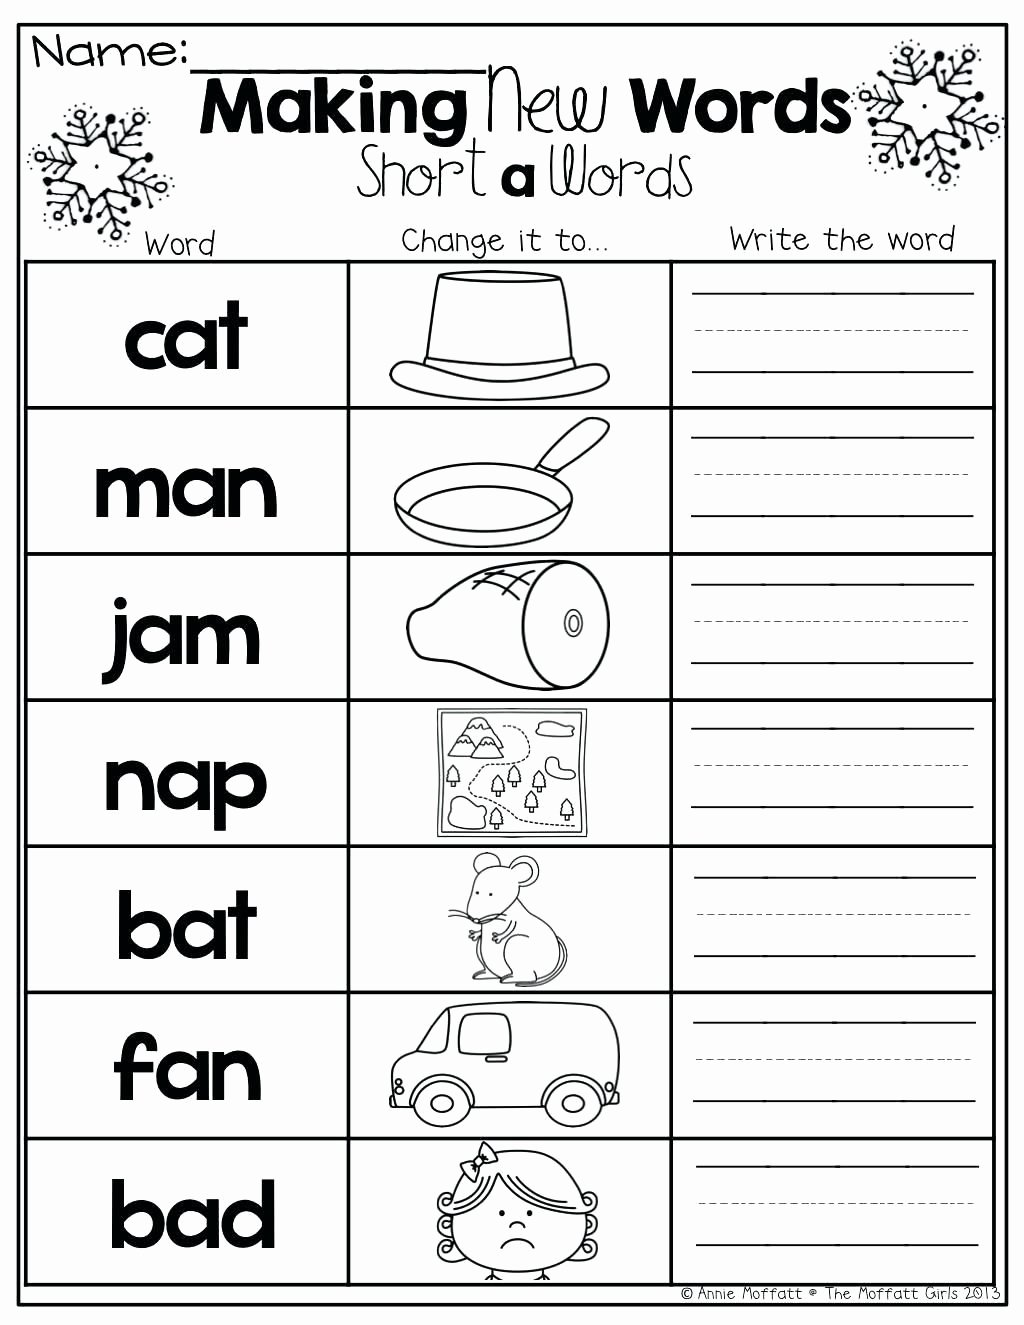 Beginning Middle End Worksheet Best Of Beginning Middle End Worksheets Kindergarten and Ending